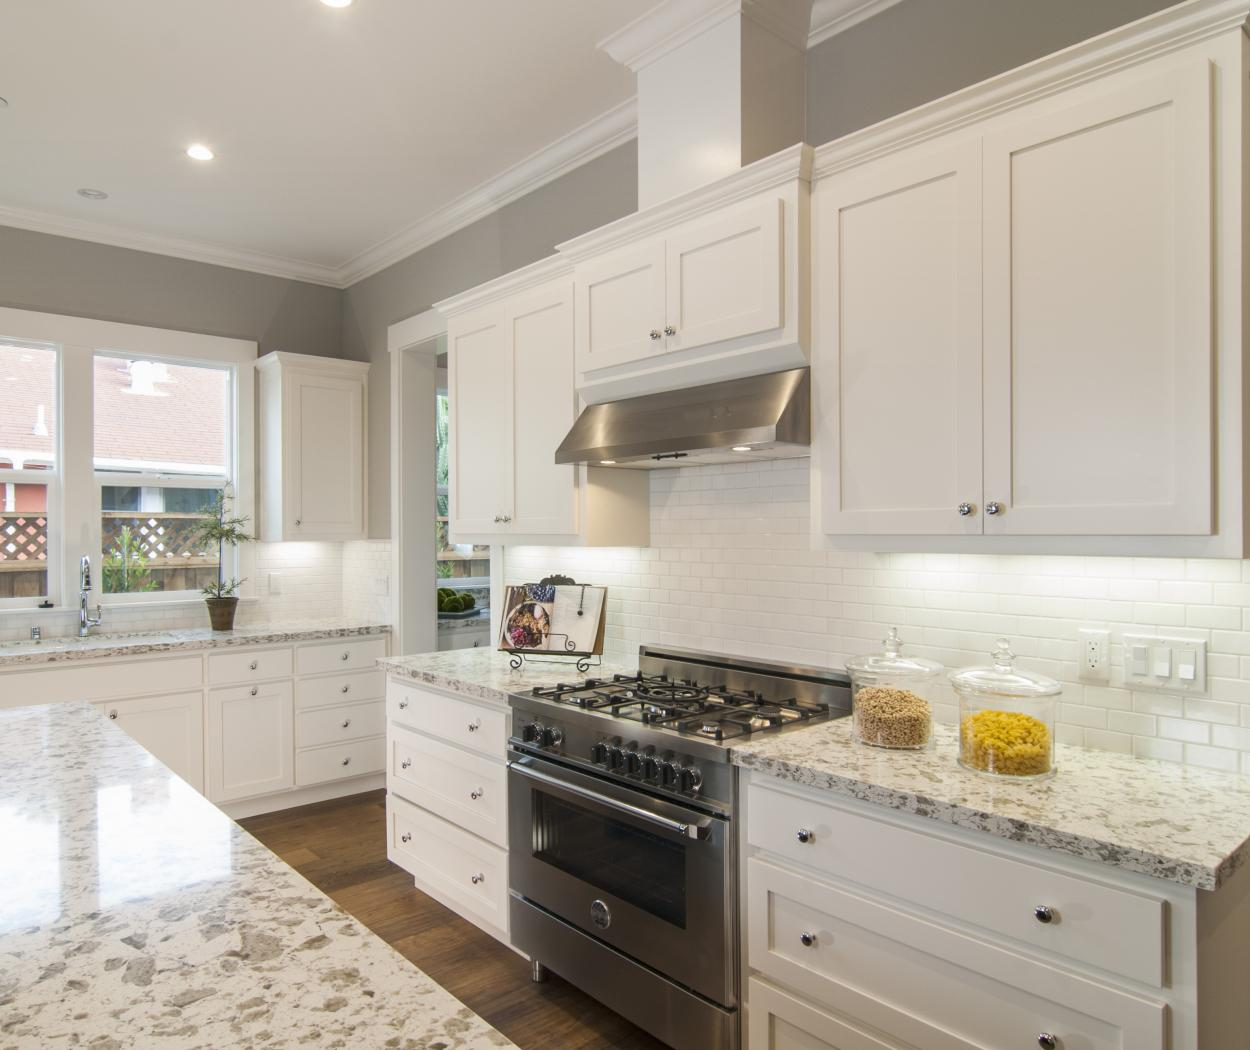 Transitional White, Shaker Style Kitchen with Stainless Steel Appliances and a Beautiful Marble Counter Top